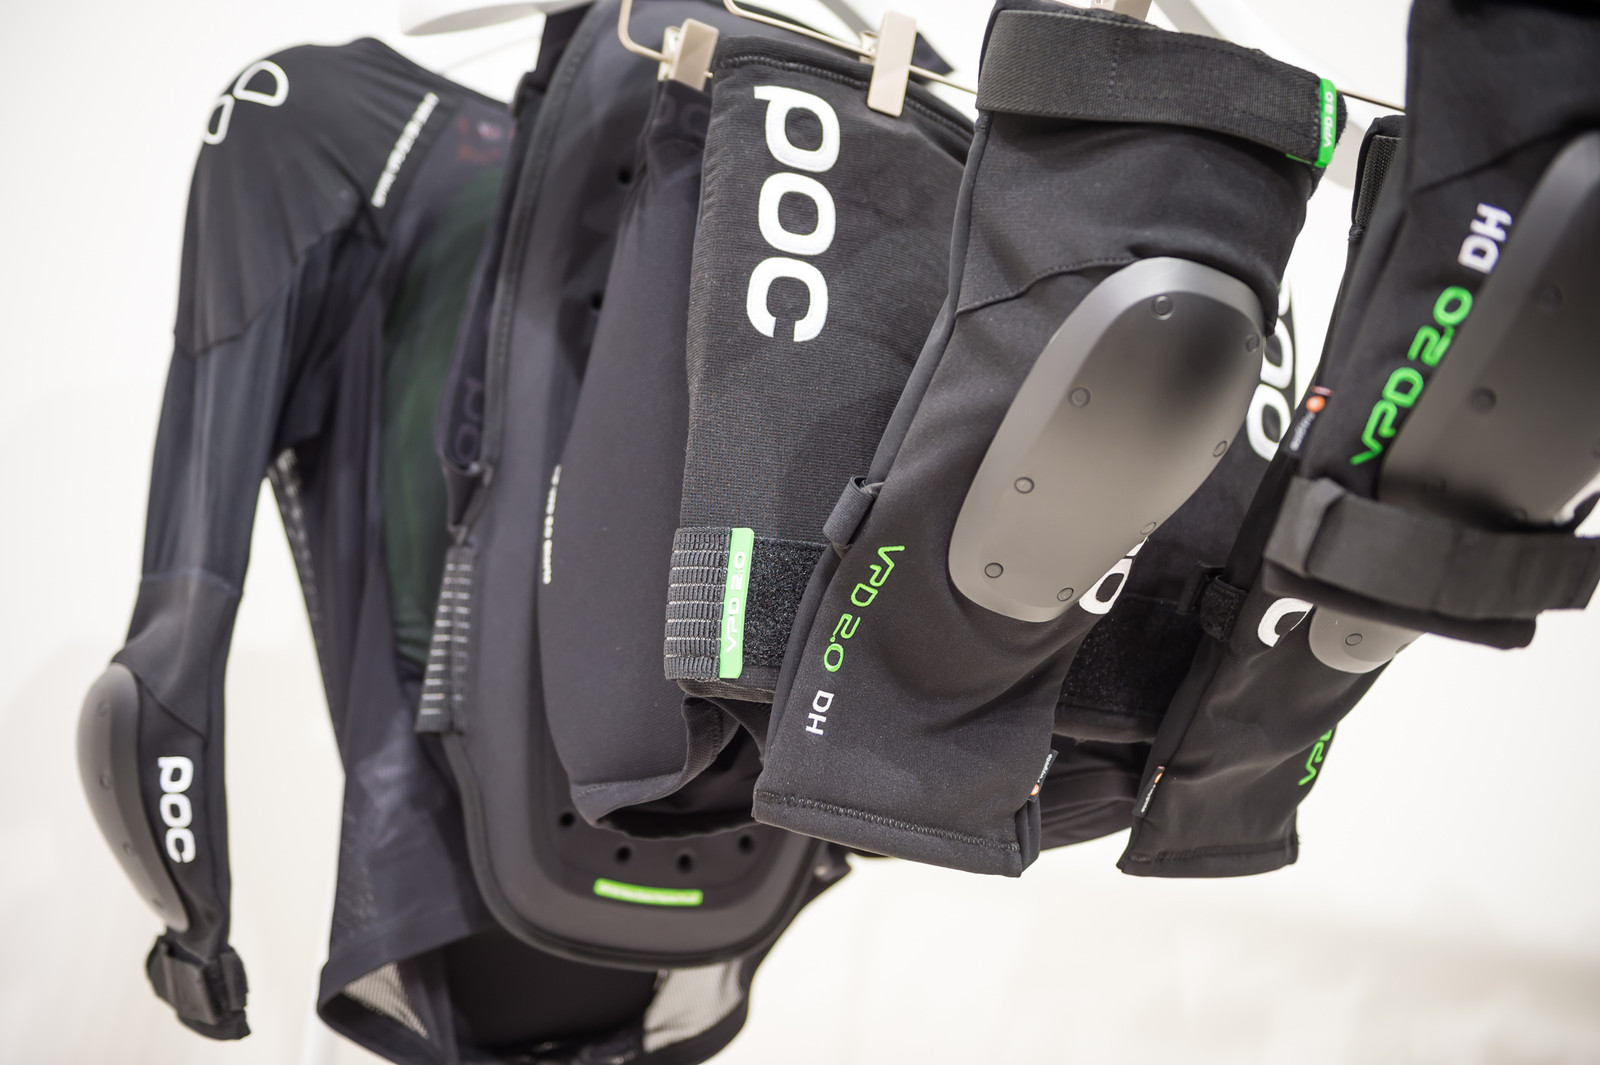 POC VPD 2.0 Protection - EUROBIKE - 2017 Mountain Bike Apparel and Protective Gear - Mountain Biking Pictures - Vital MTB